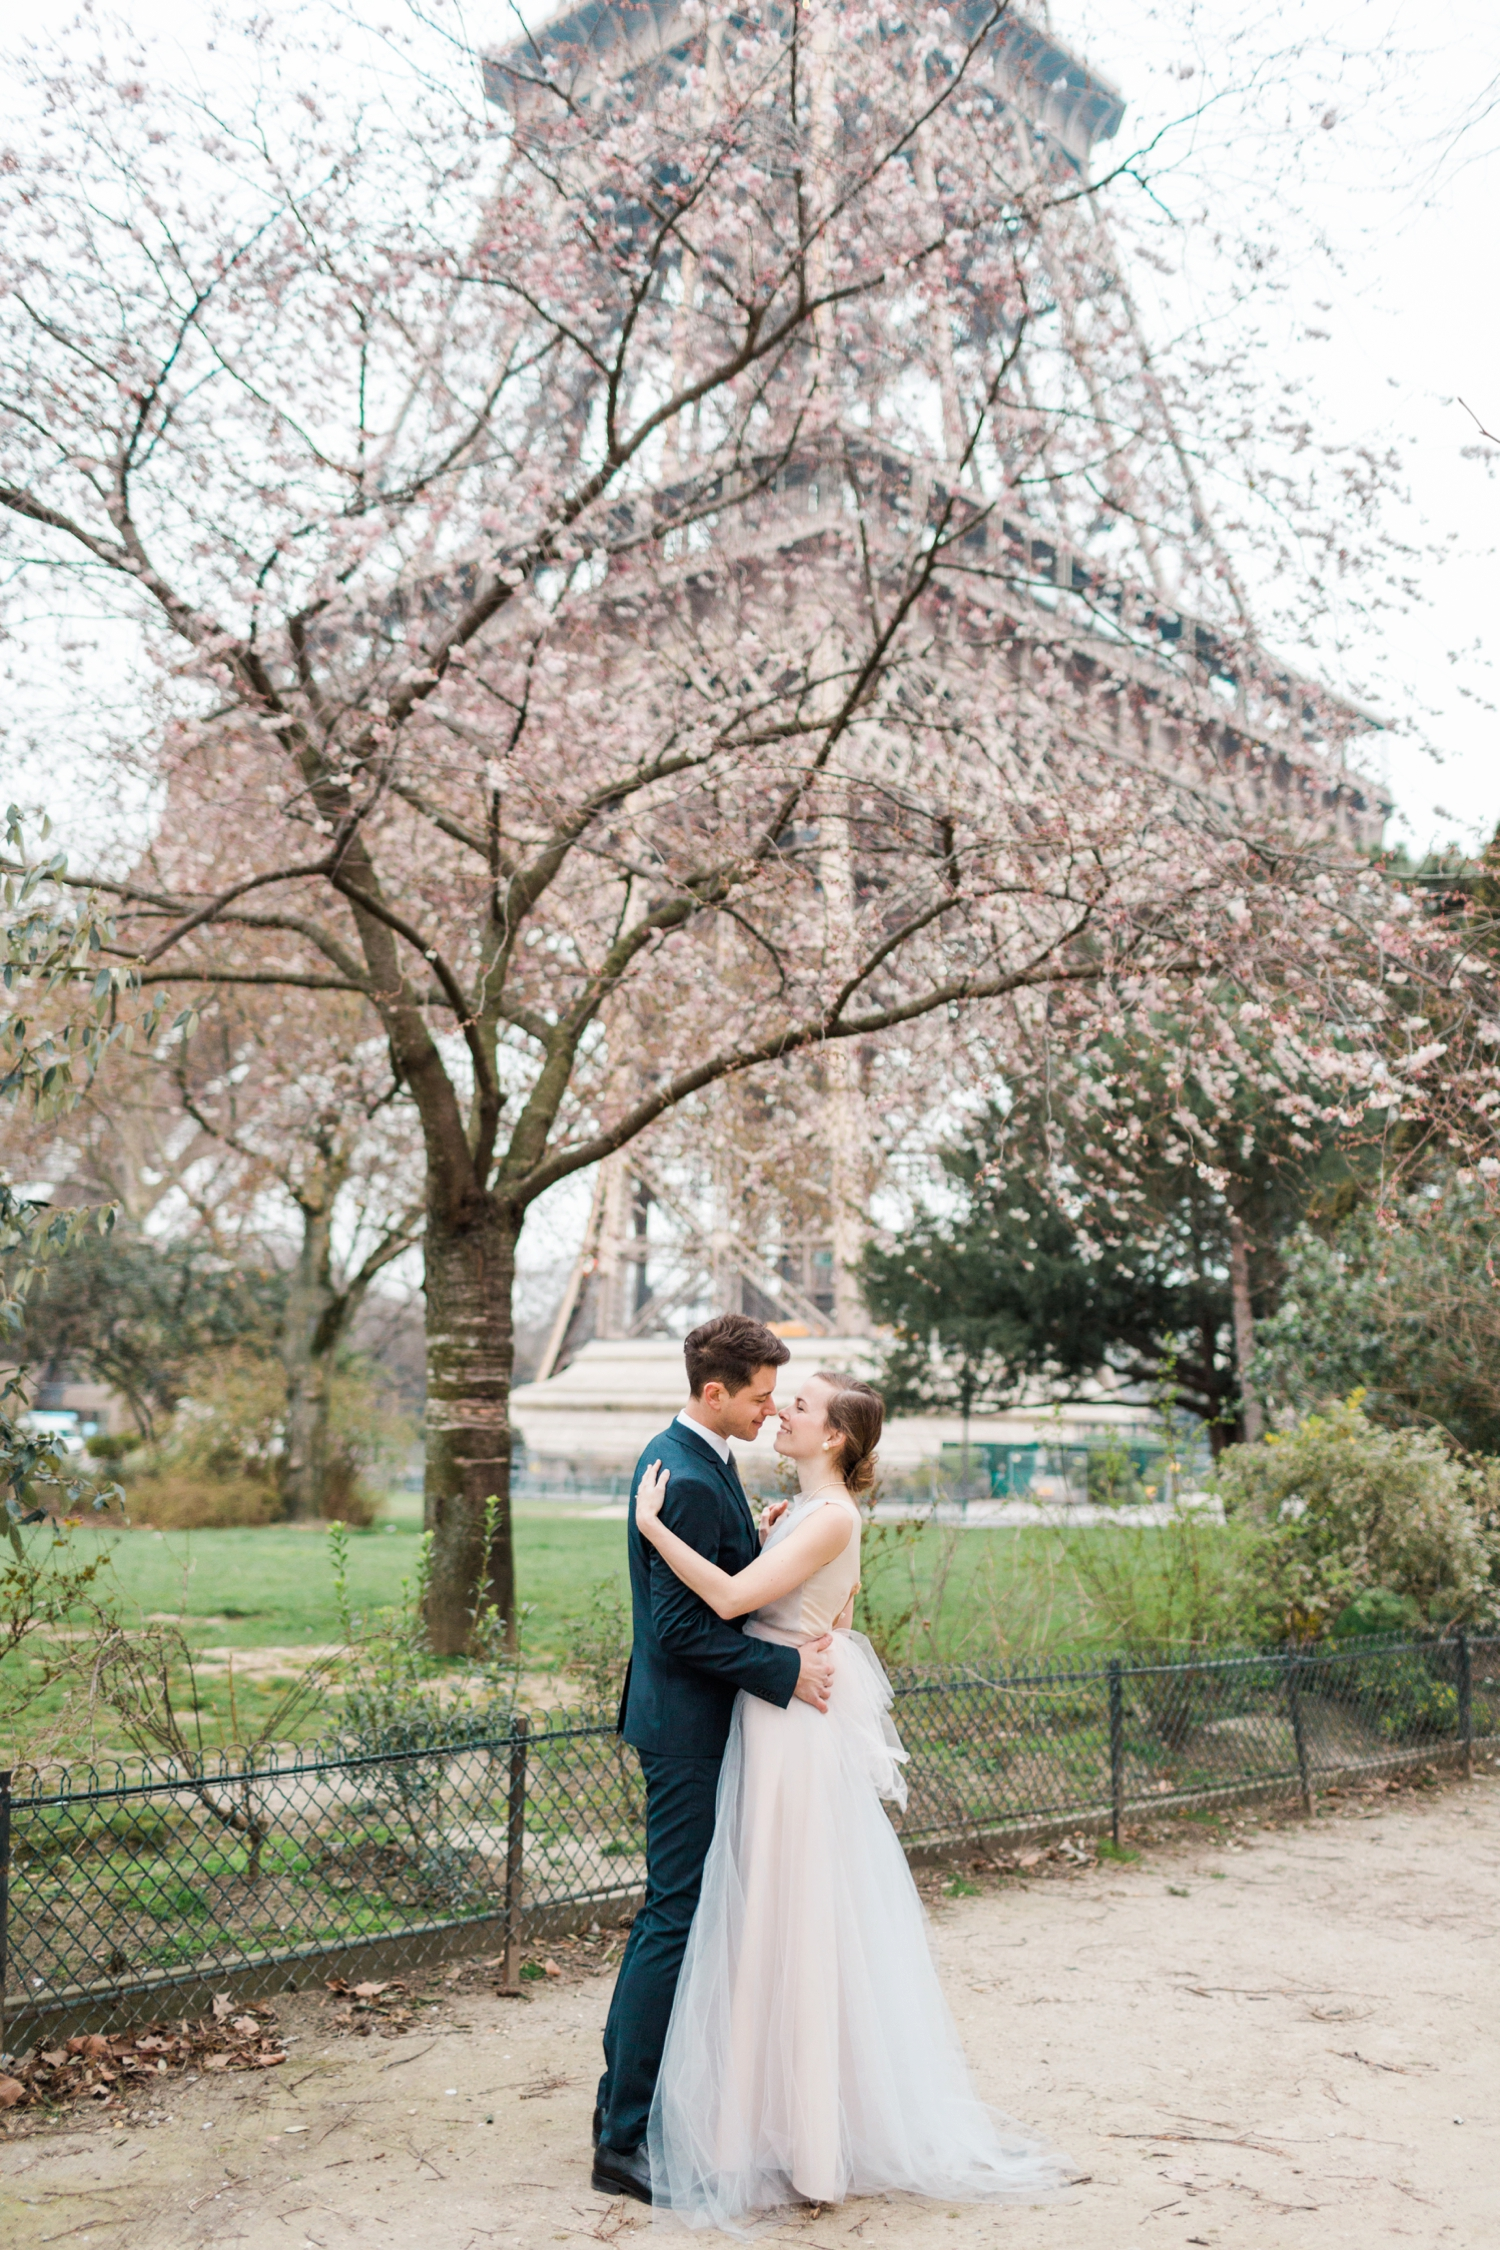 Paris-France-Wedding-Photography-Chloe-Luka-Photography_7646.jpg